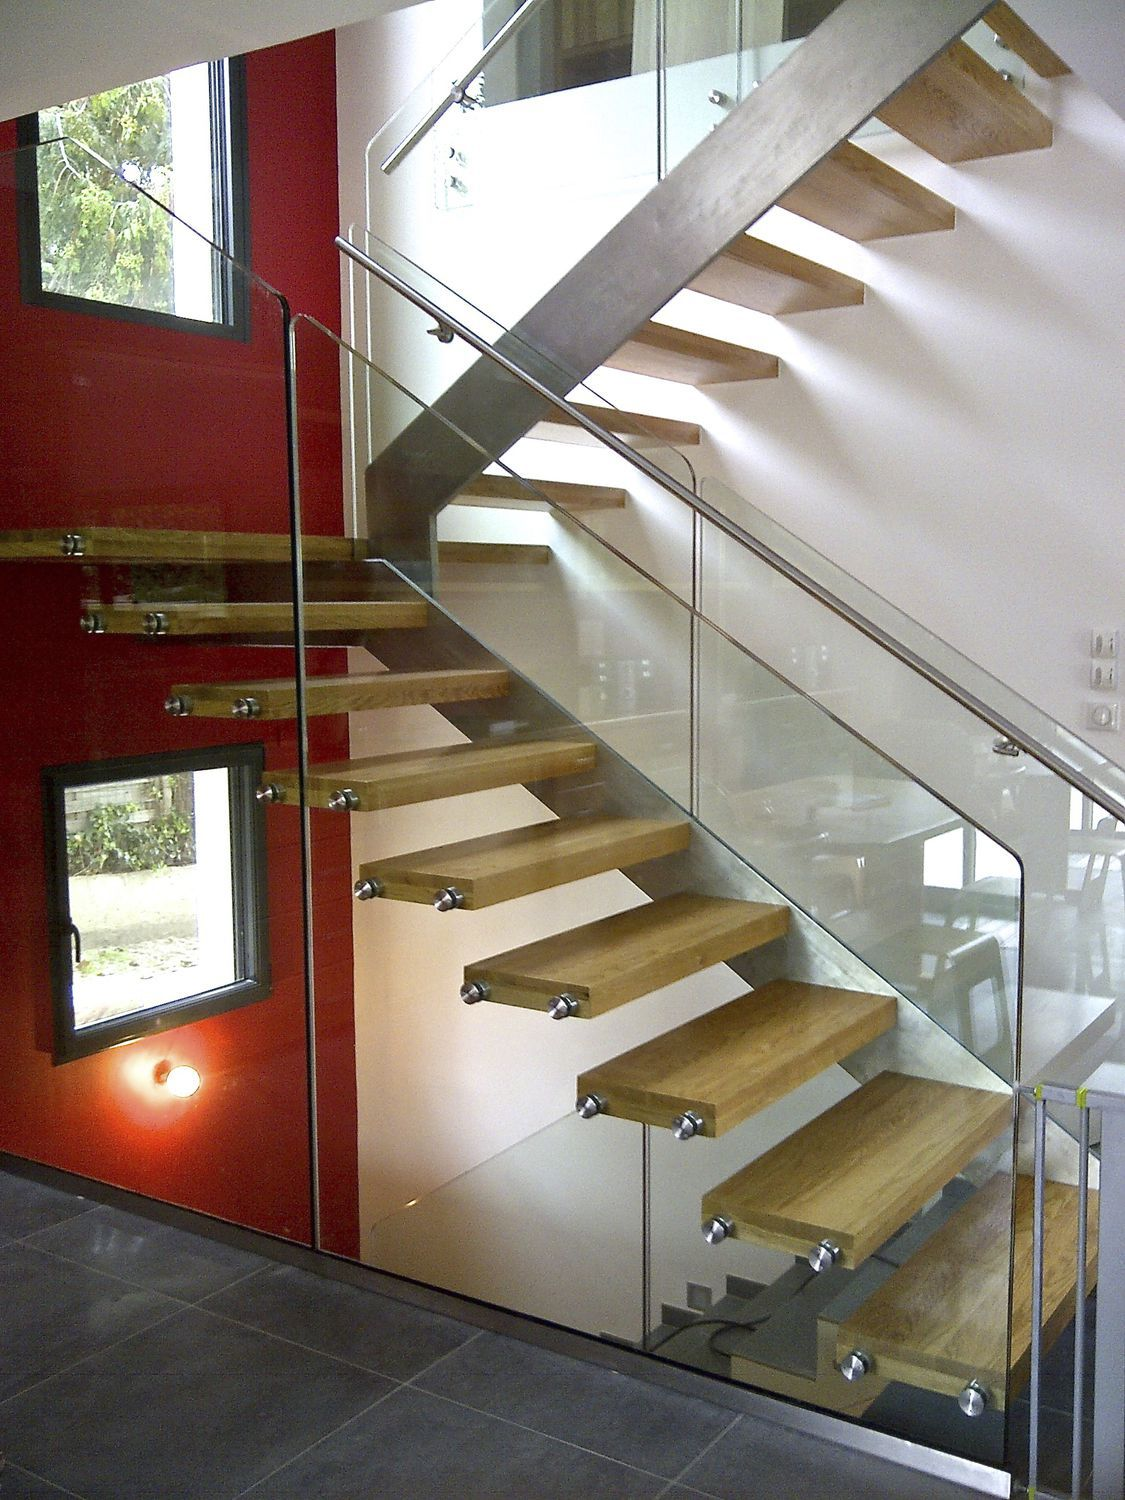 Escalier Bois Et Inox Straight Staircase Half Turn Stainless Steel Frame Glass